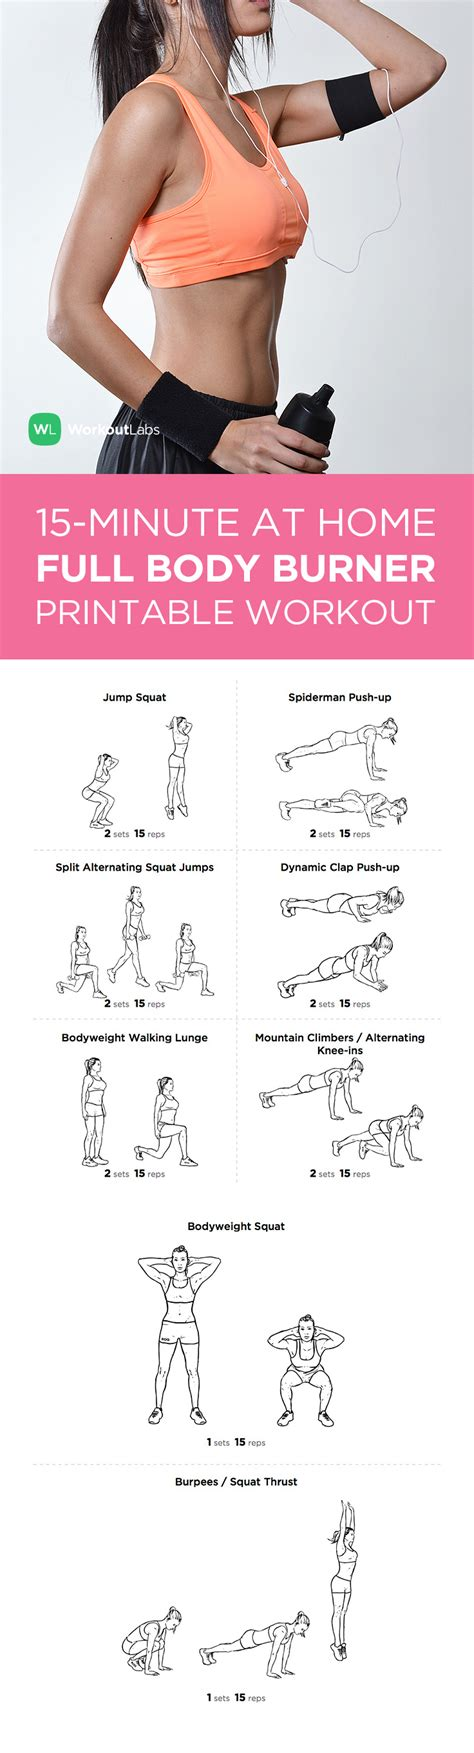 at home workout plans for women 15 minute full body burner at home workout for men women